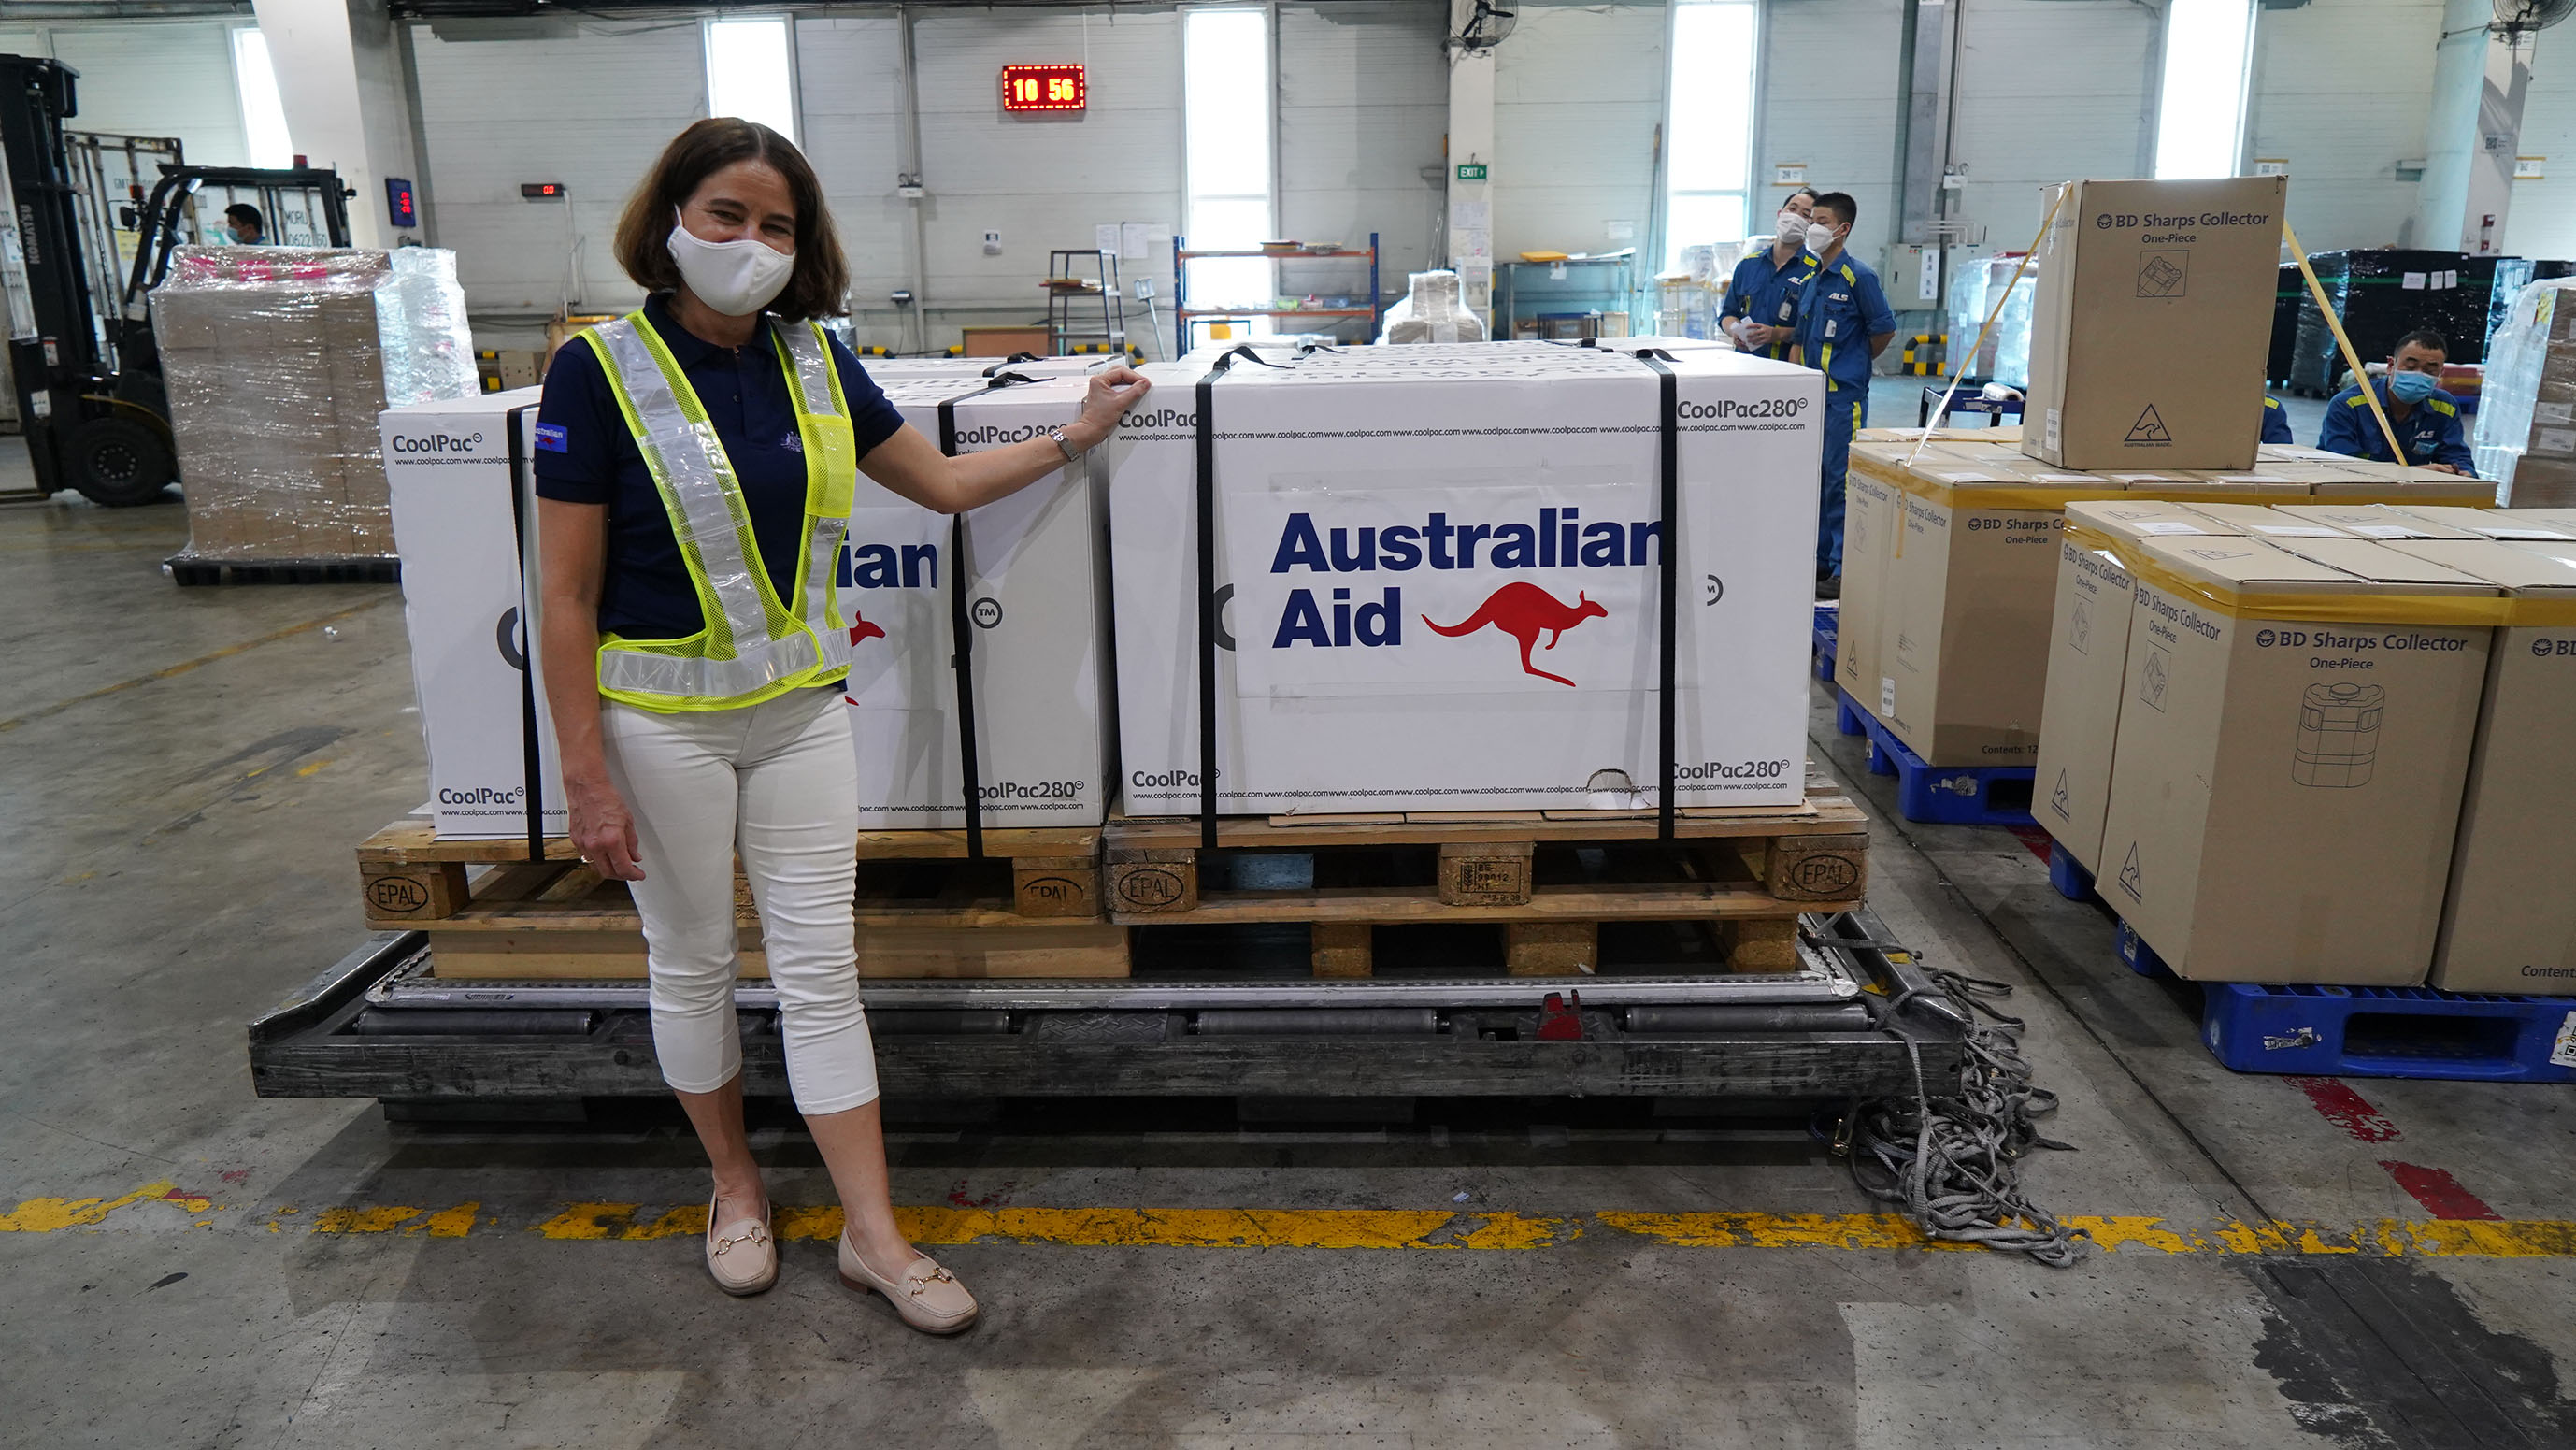 Australia Delivers An Additional 300,000 COVID-19 Vaccines And Increases Support to 5.2 Million Doses